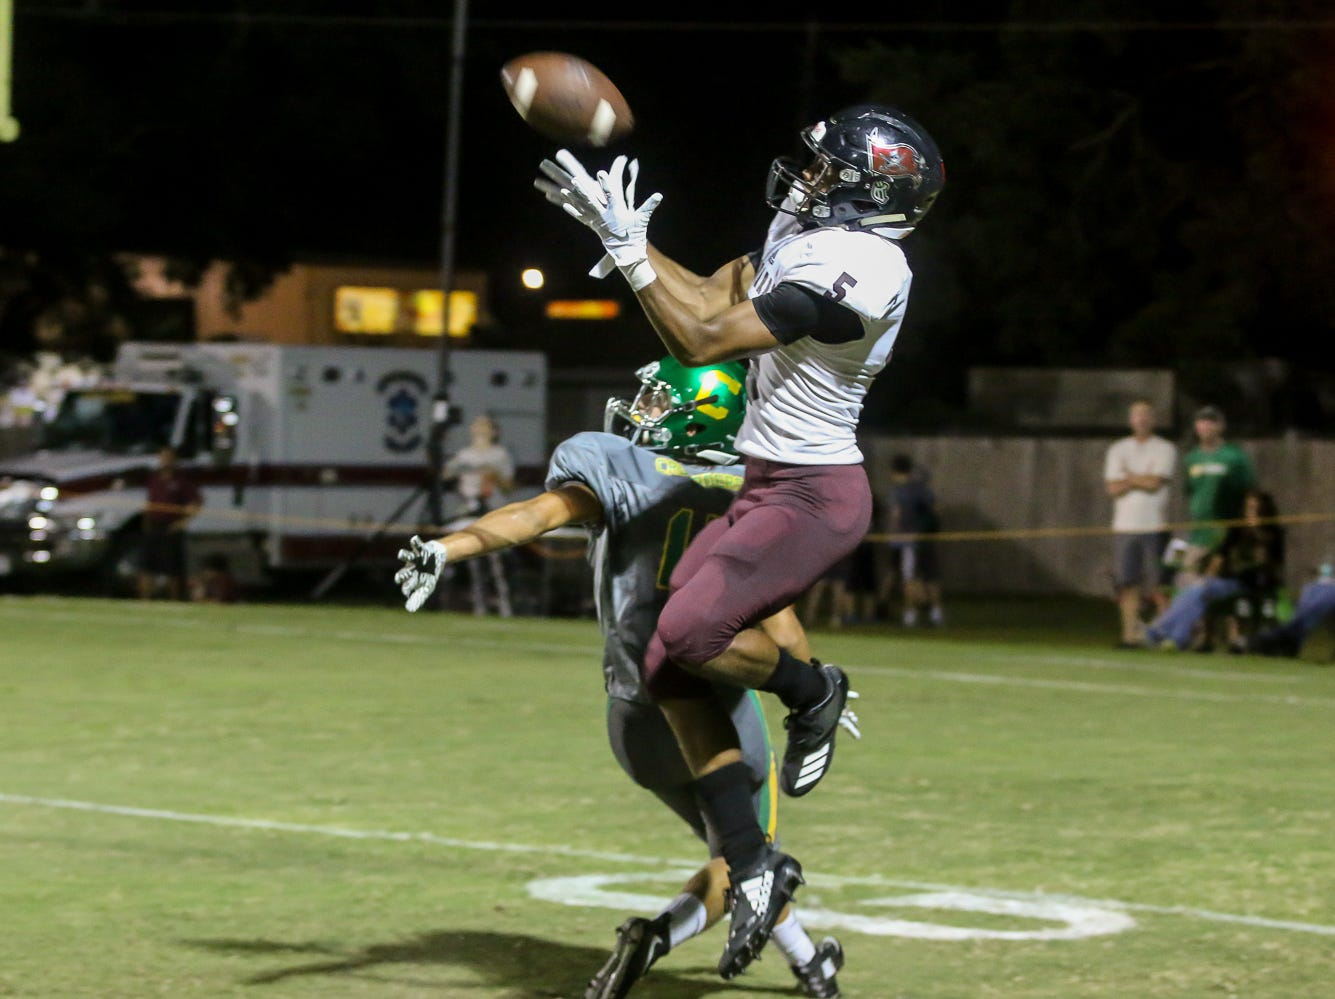 Navarre's Dante Wright (5) turns around at the right moment to catch a throw from quarterback Garon Finley and then runs it into the end zone for a touchdown at Catholic High School on Friday, August 24, 2018.